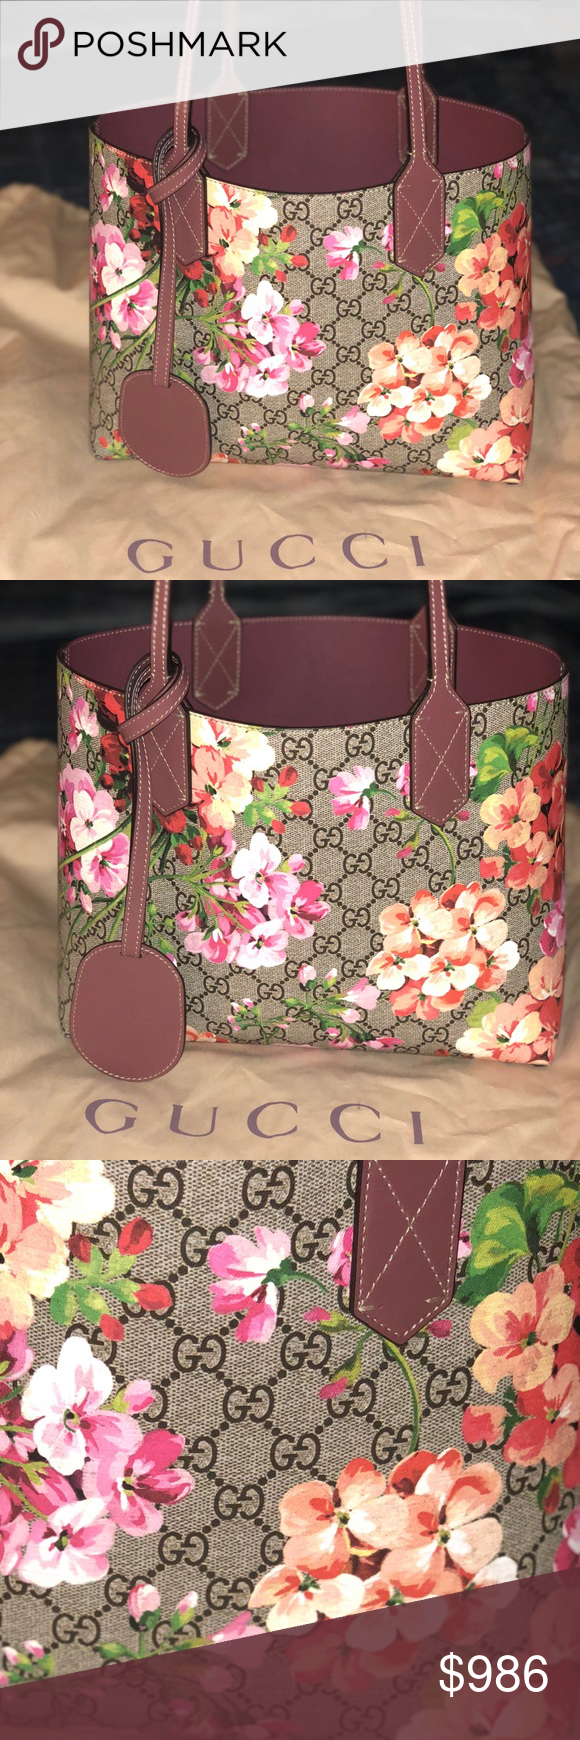 257278b91ecd50 GUCCI Blooms Reversible Tote Small GG Blooms Reversible Canvas & Leather